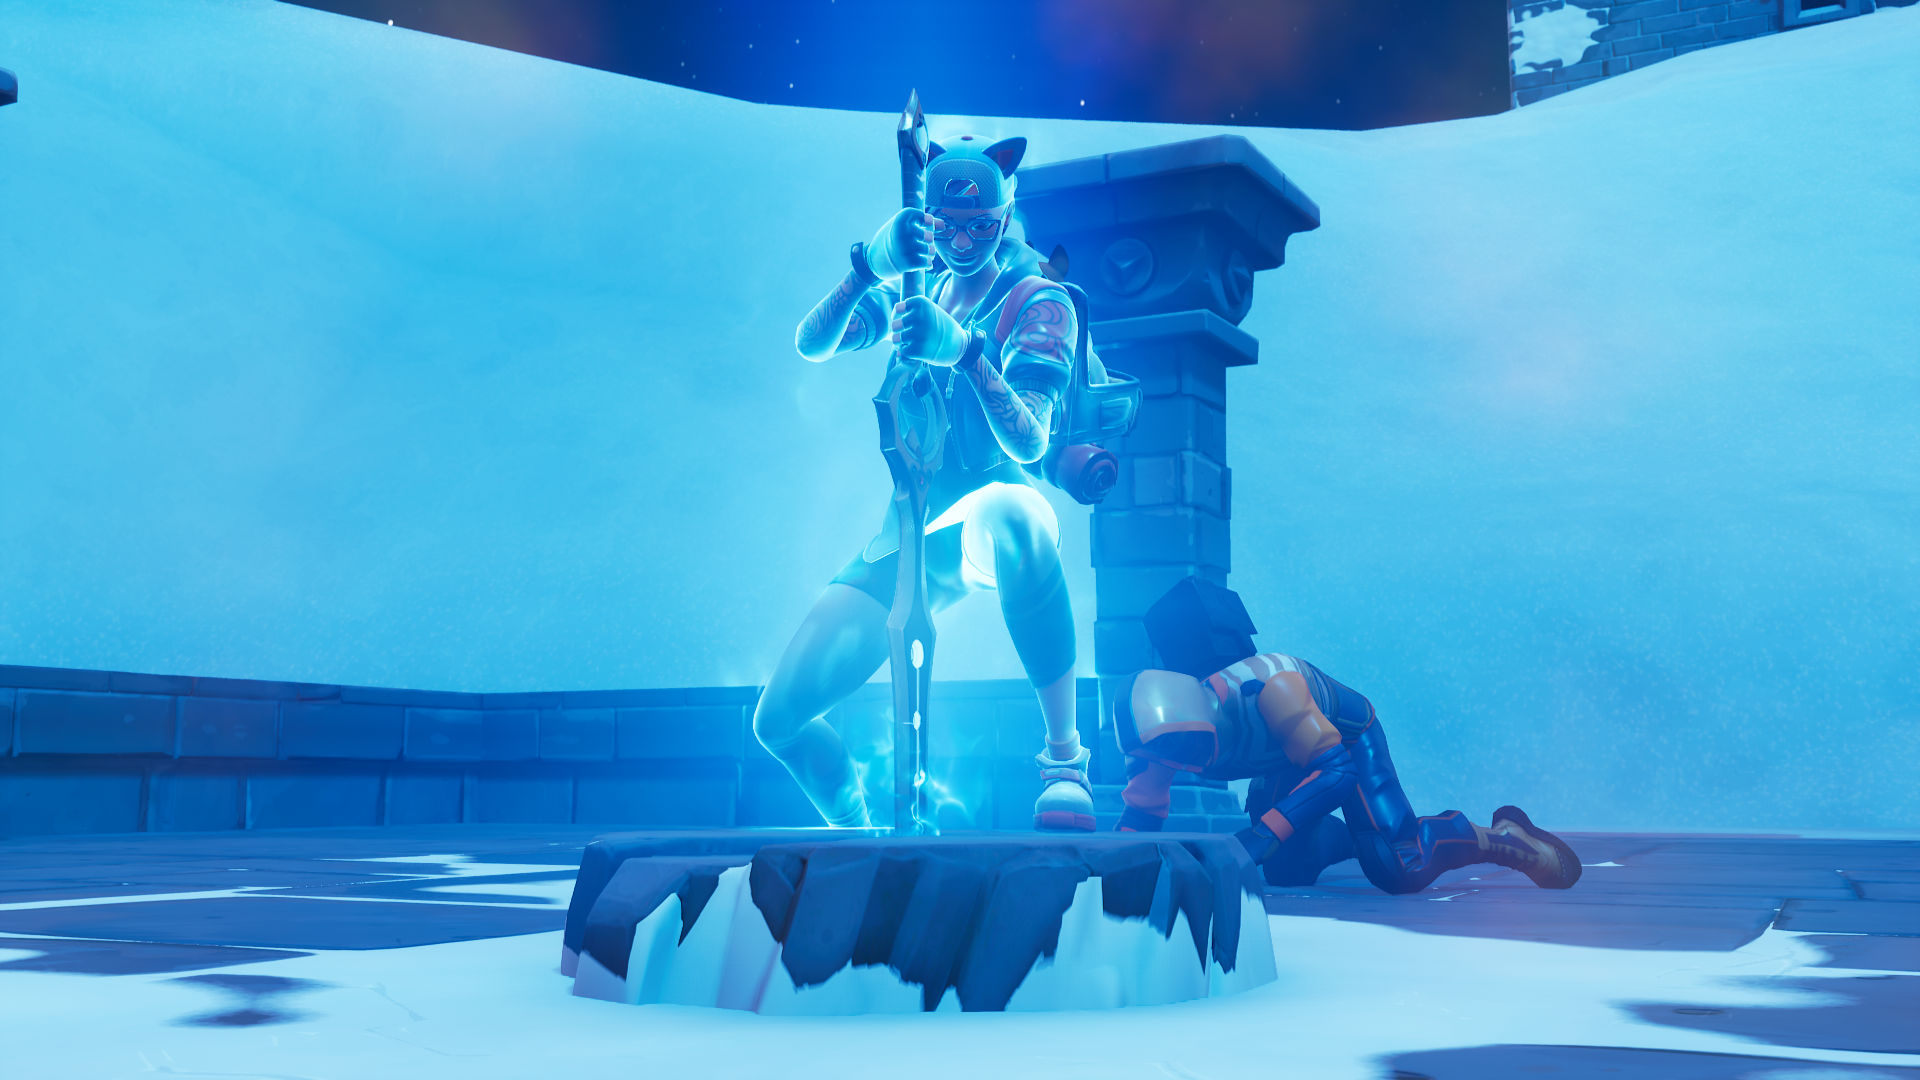 Fortnite's Infinity Blade has been Vaulted